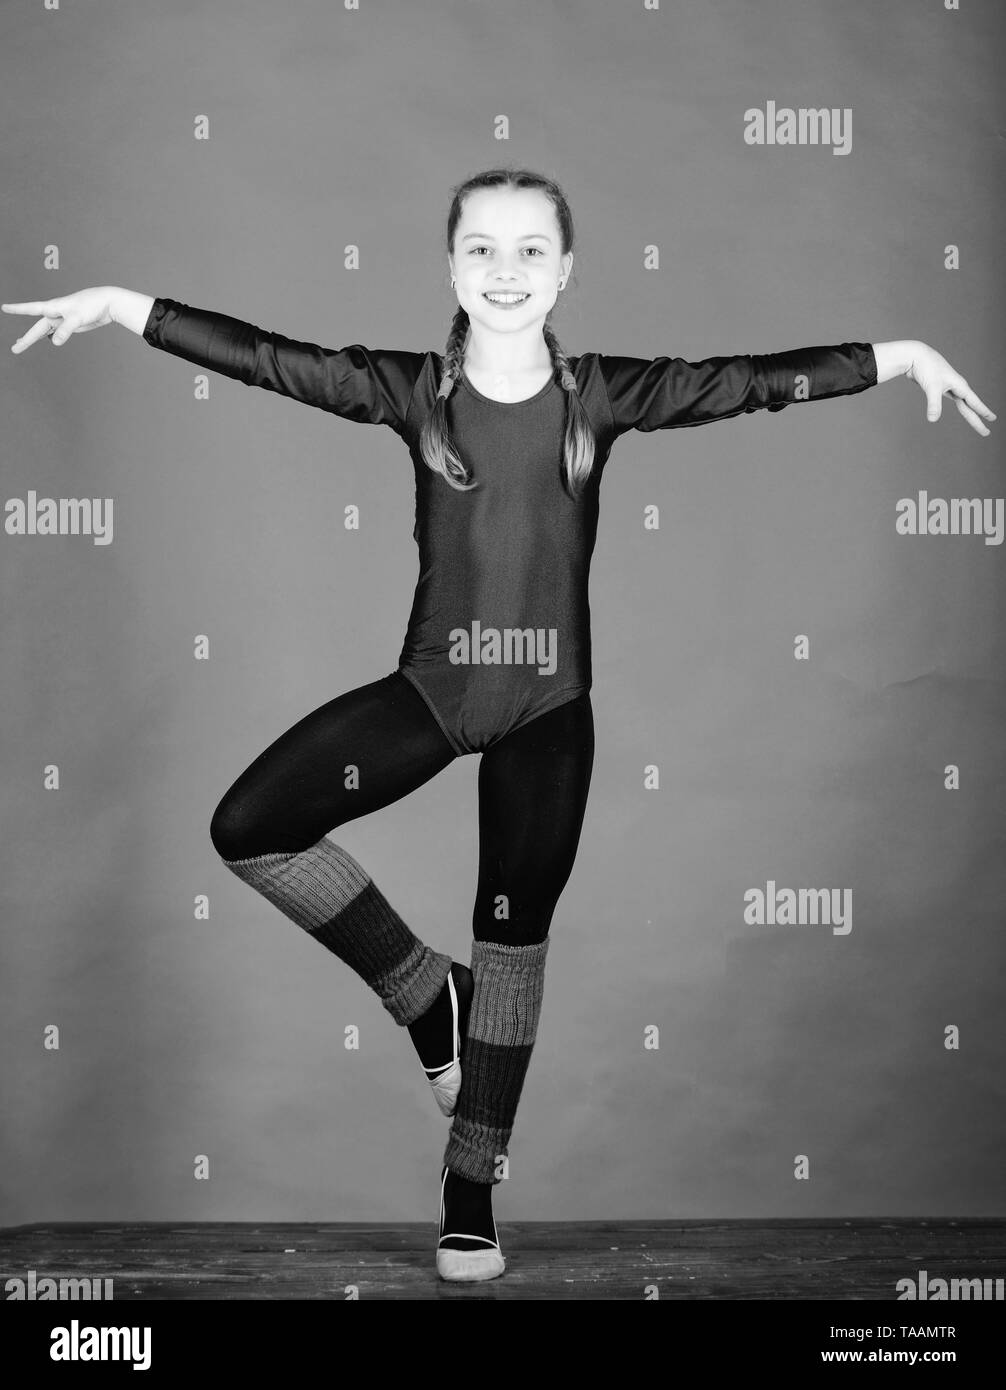 Everything is possible. success. Childhood activity. Fitness diet. Energy. Gymnastics. Happy child sportsman. Sport and health. Acrobatics gym workout of teen girl. Ballet dancer. You can do it. - Stock Image